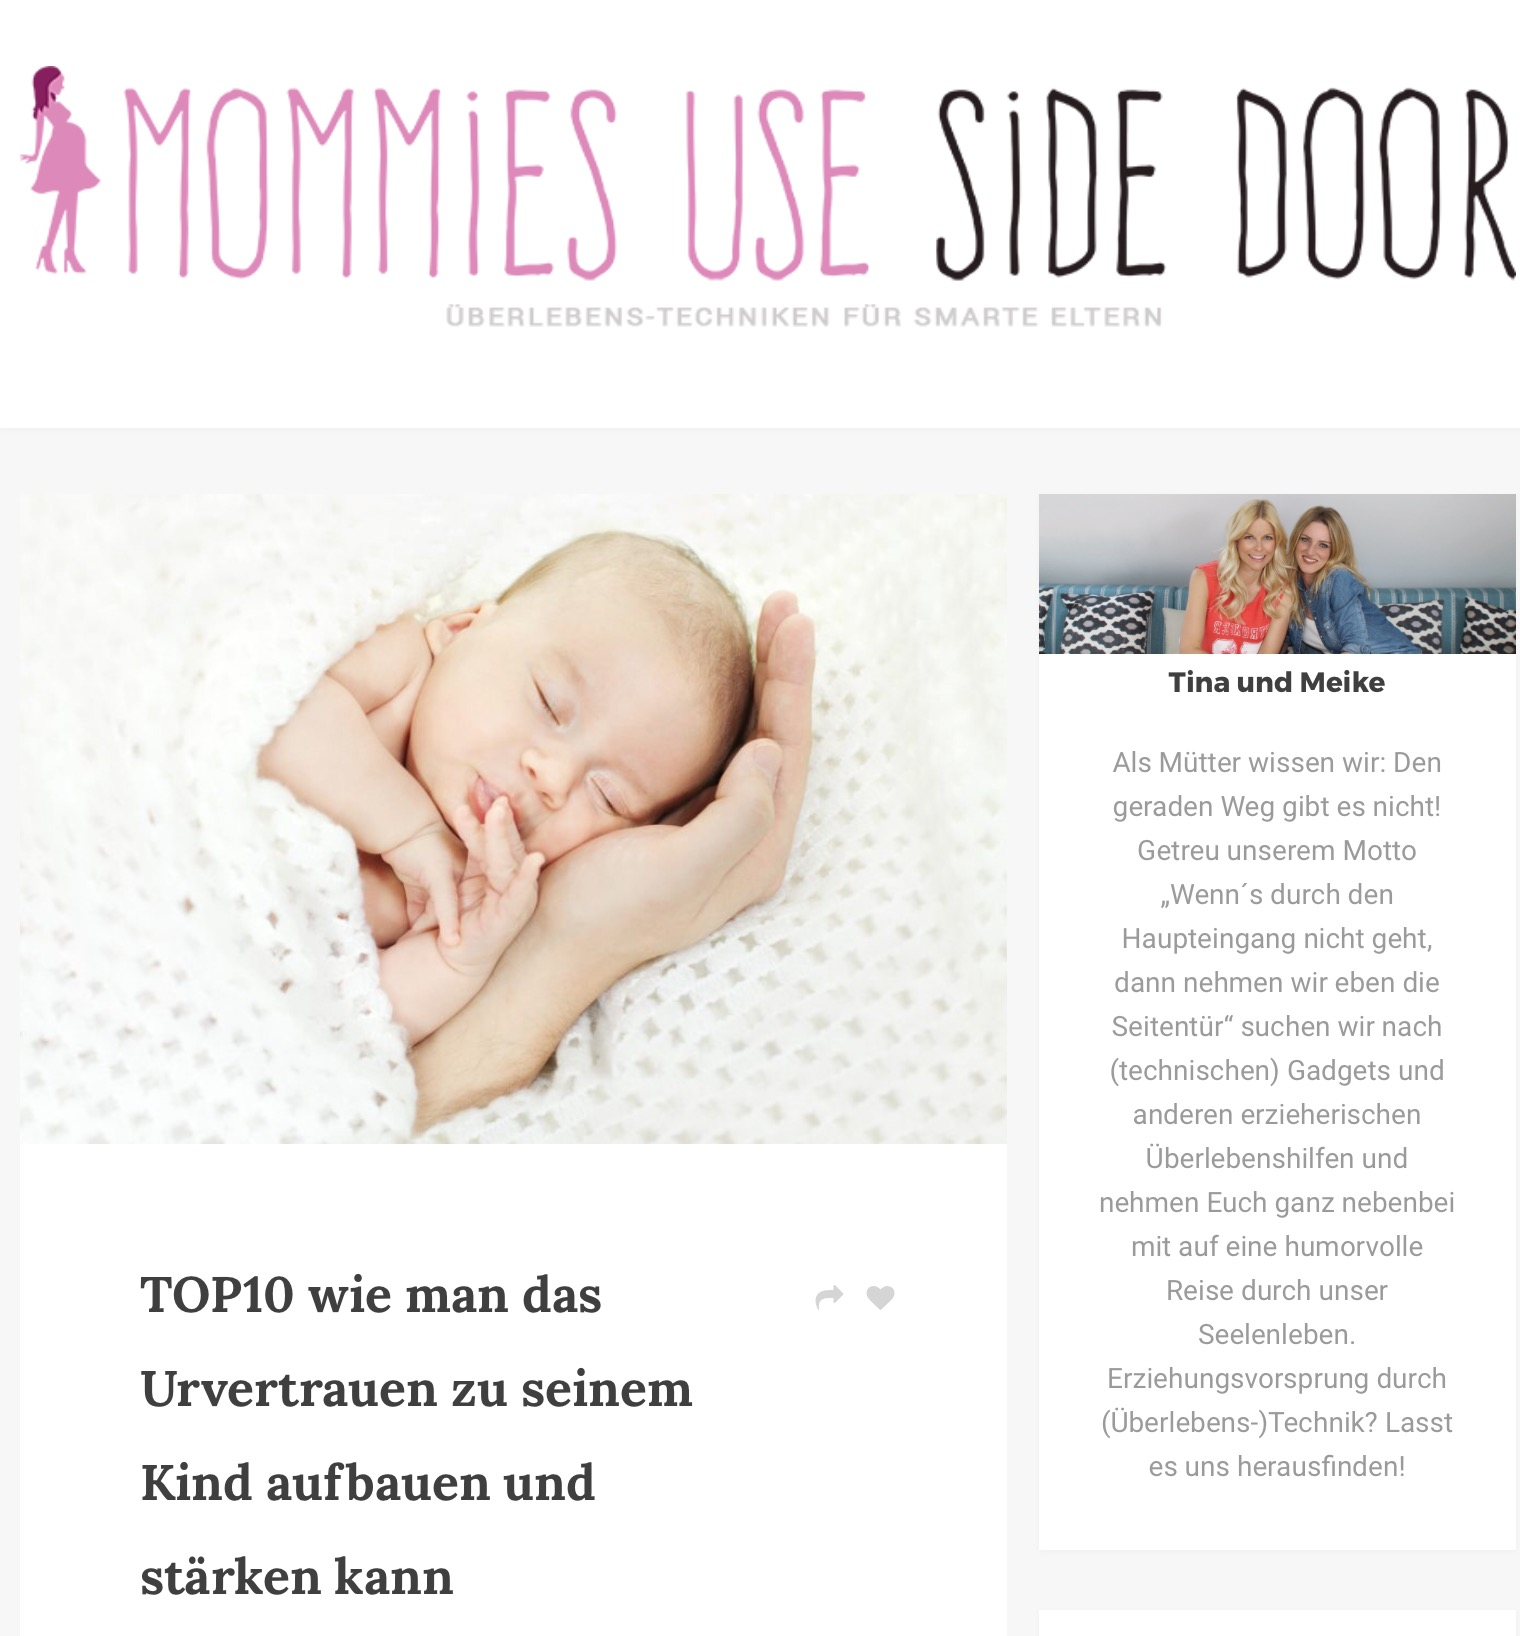 Mommies_Use_Side_Door_Gluecksmuetter_Urvertrauen